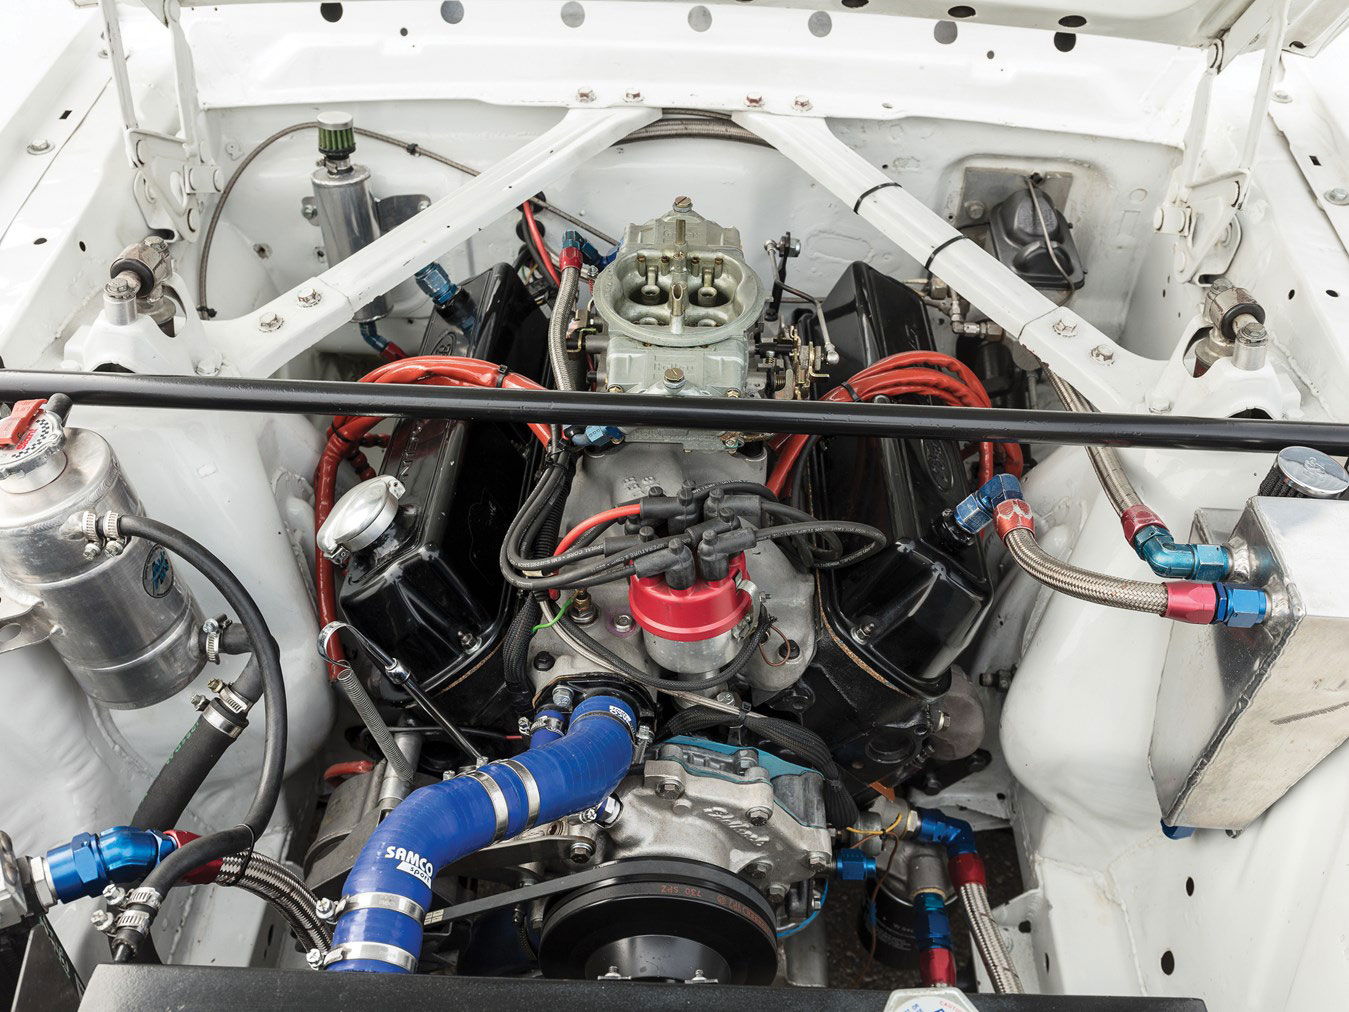 1966 Ford Mustang 289 Coupé FIA engine